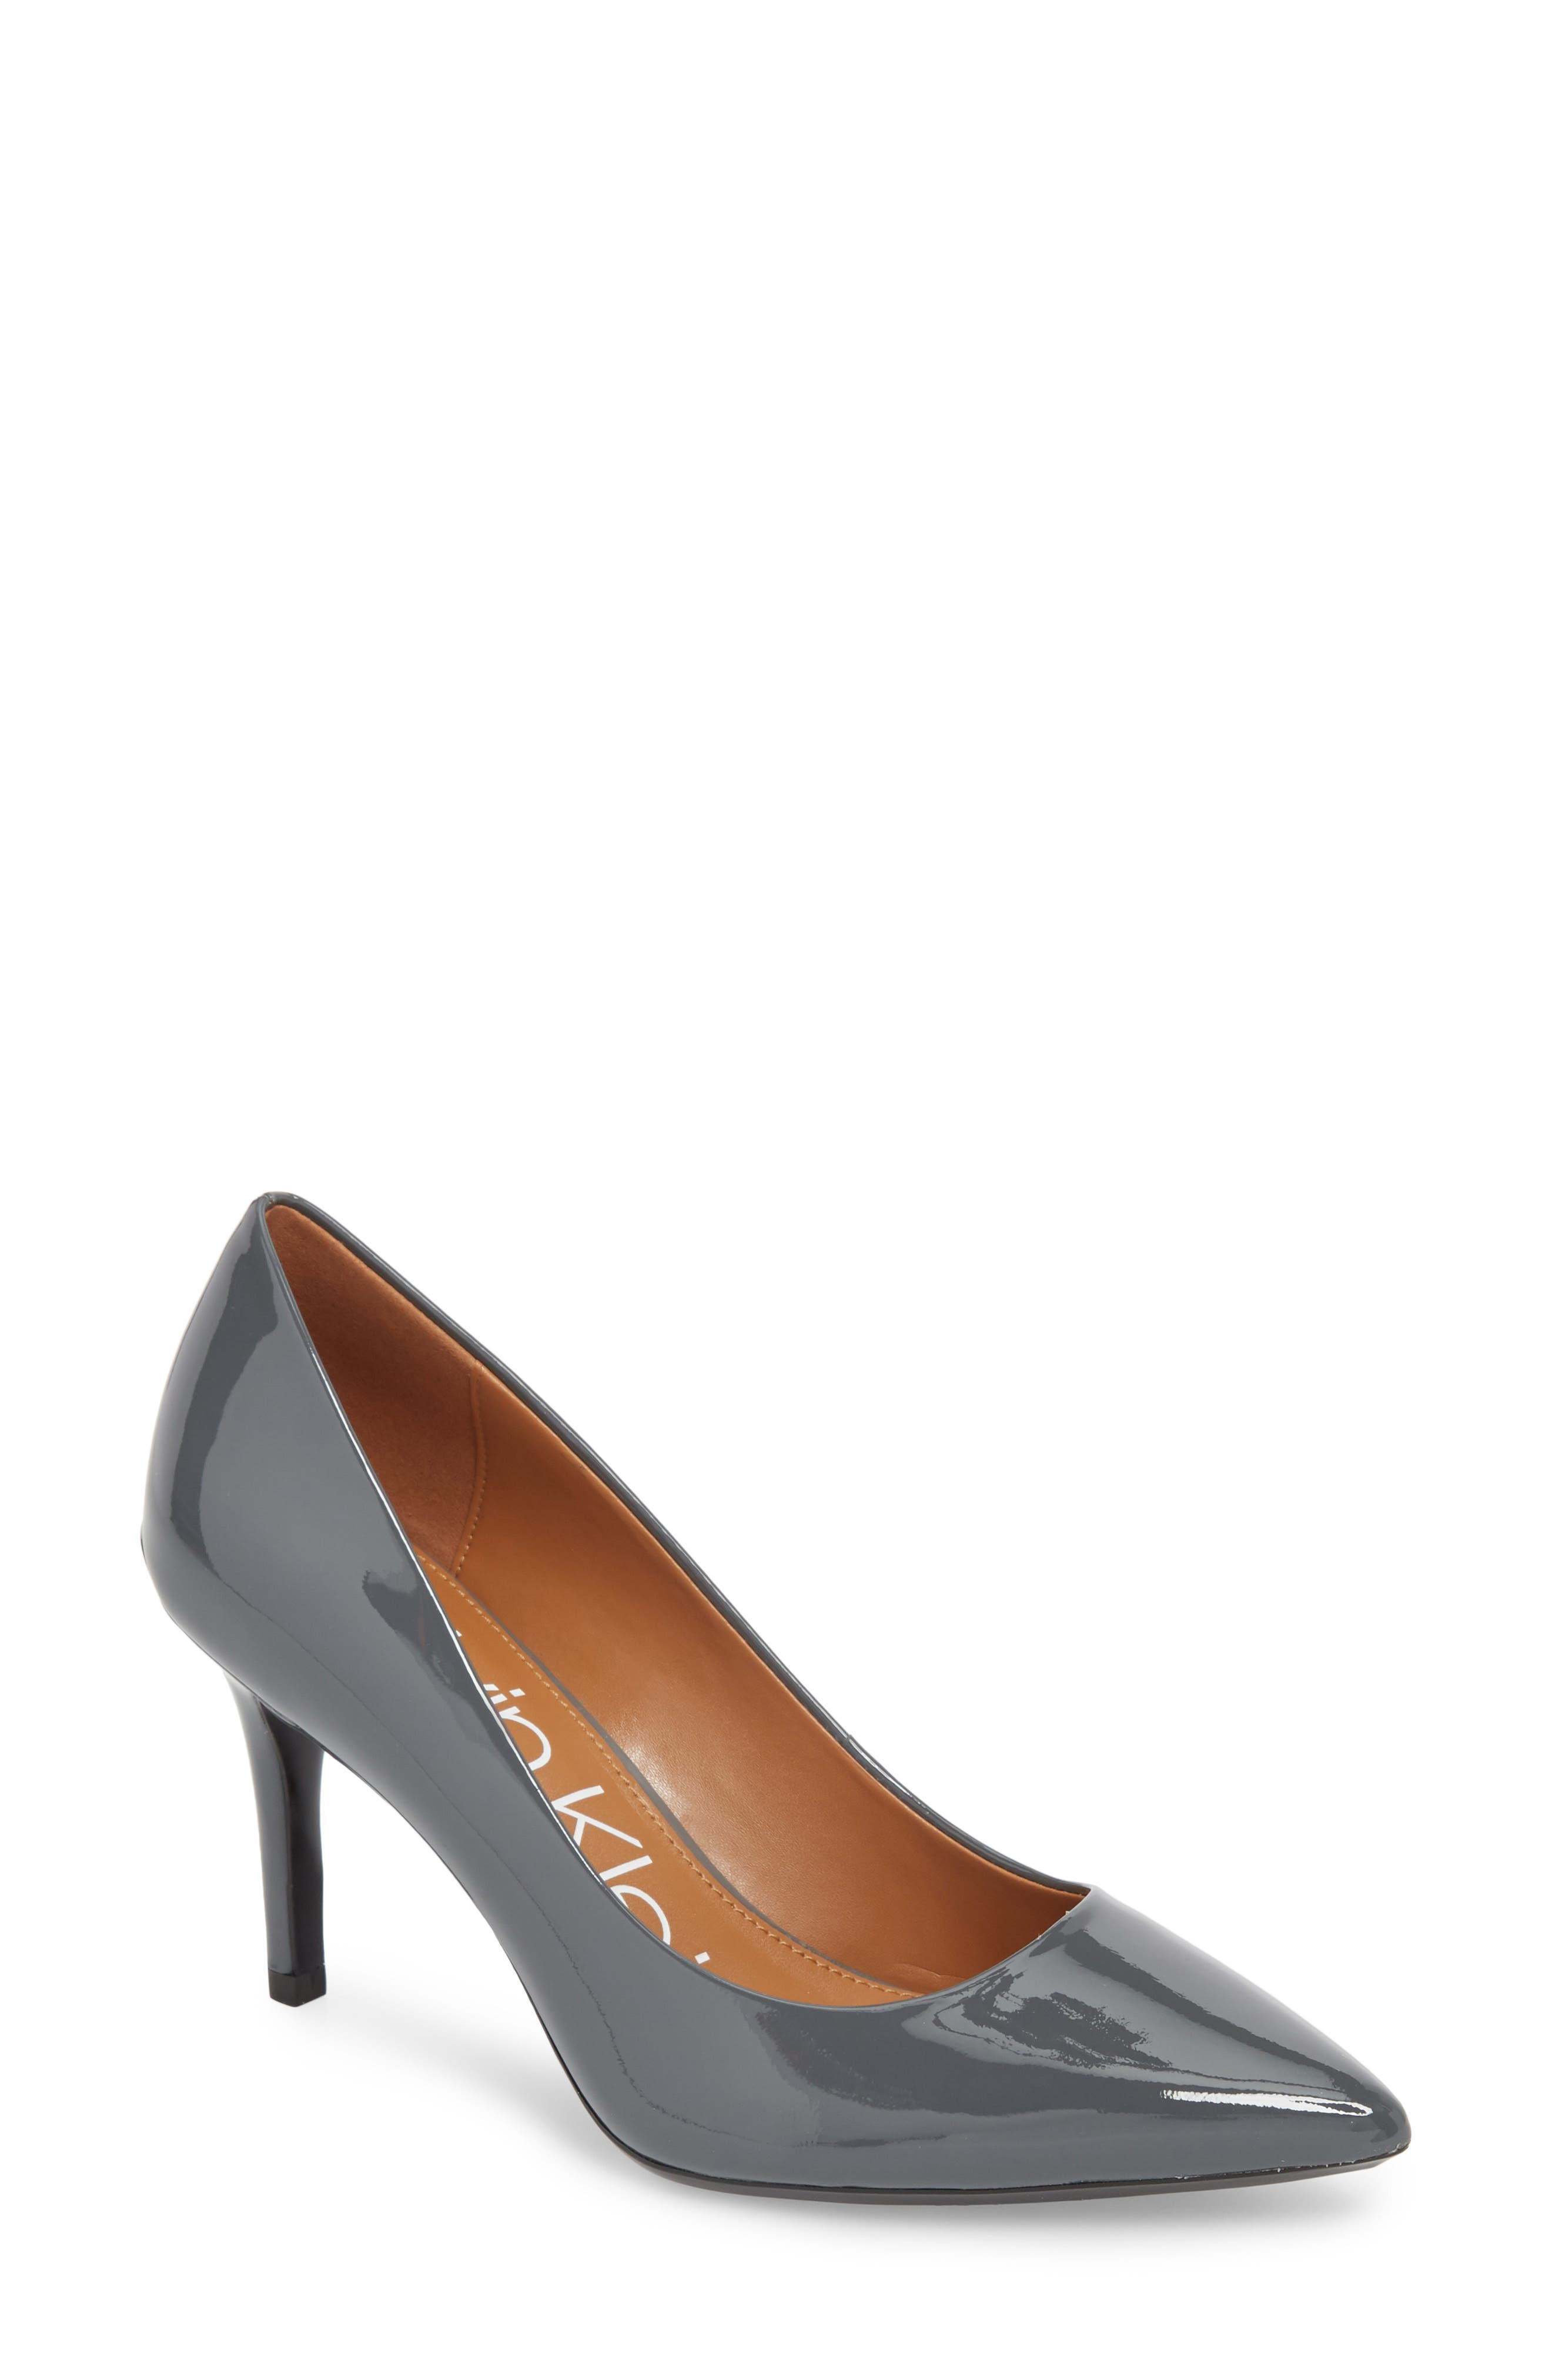 'Gayle' Pointy Toe Pump,                             Main thumbnail 1, color,                             STEEL GREYSTONE LEATHER